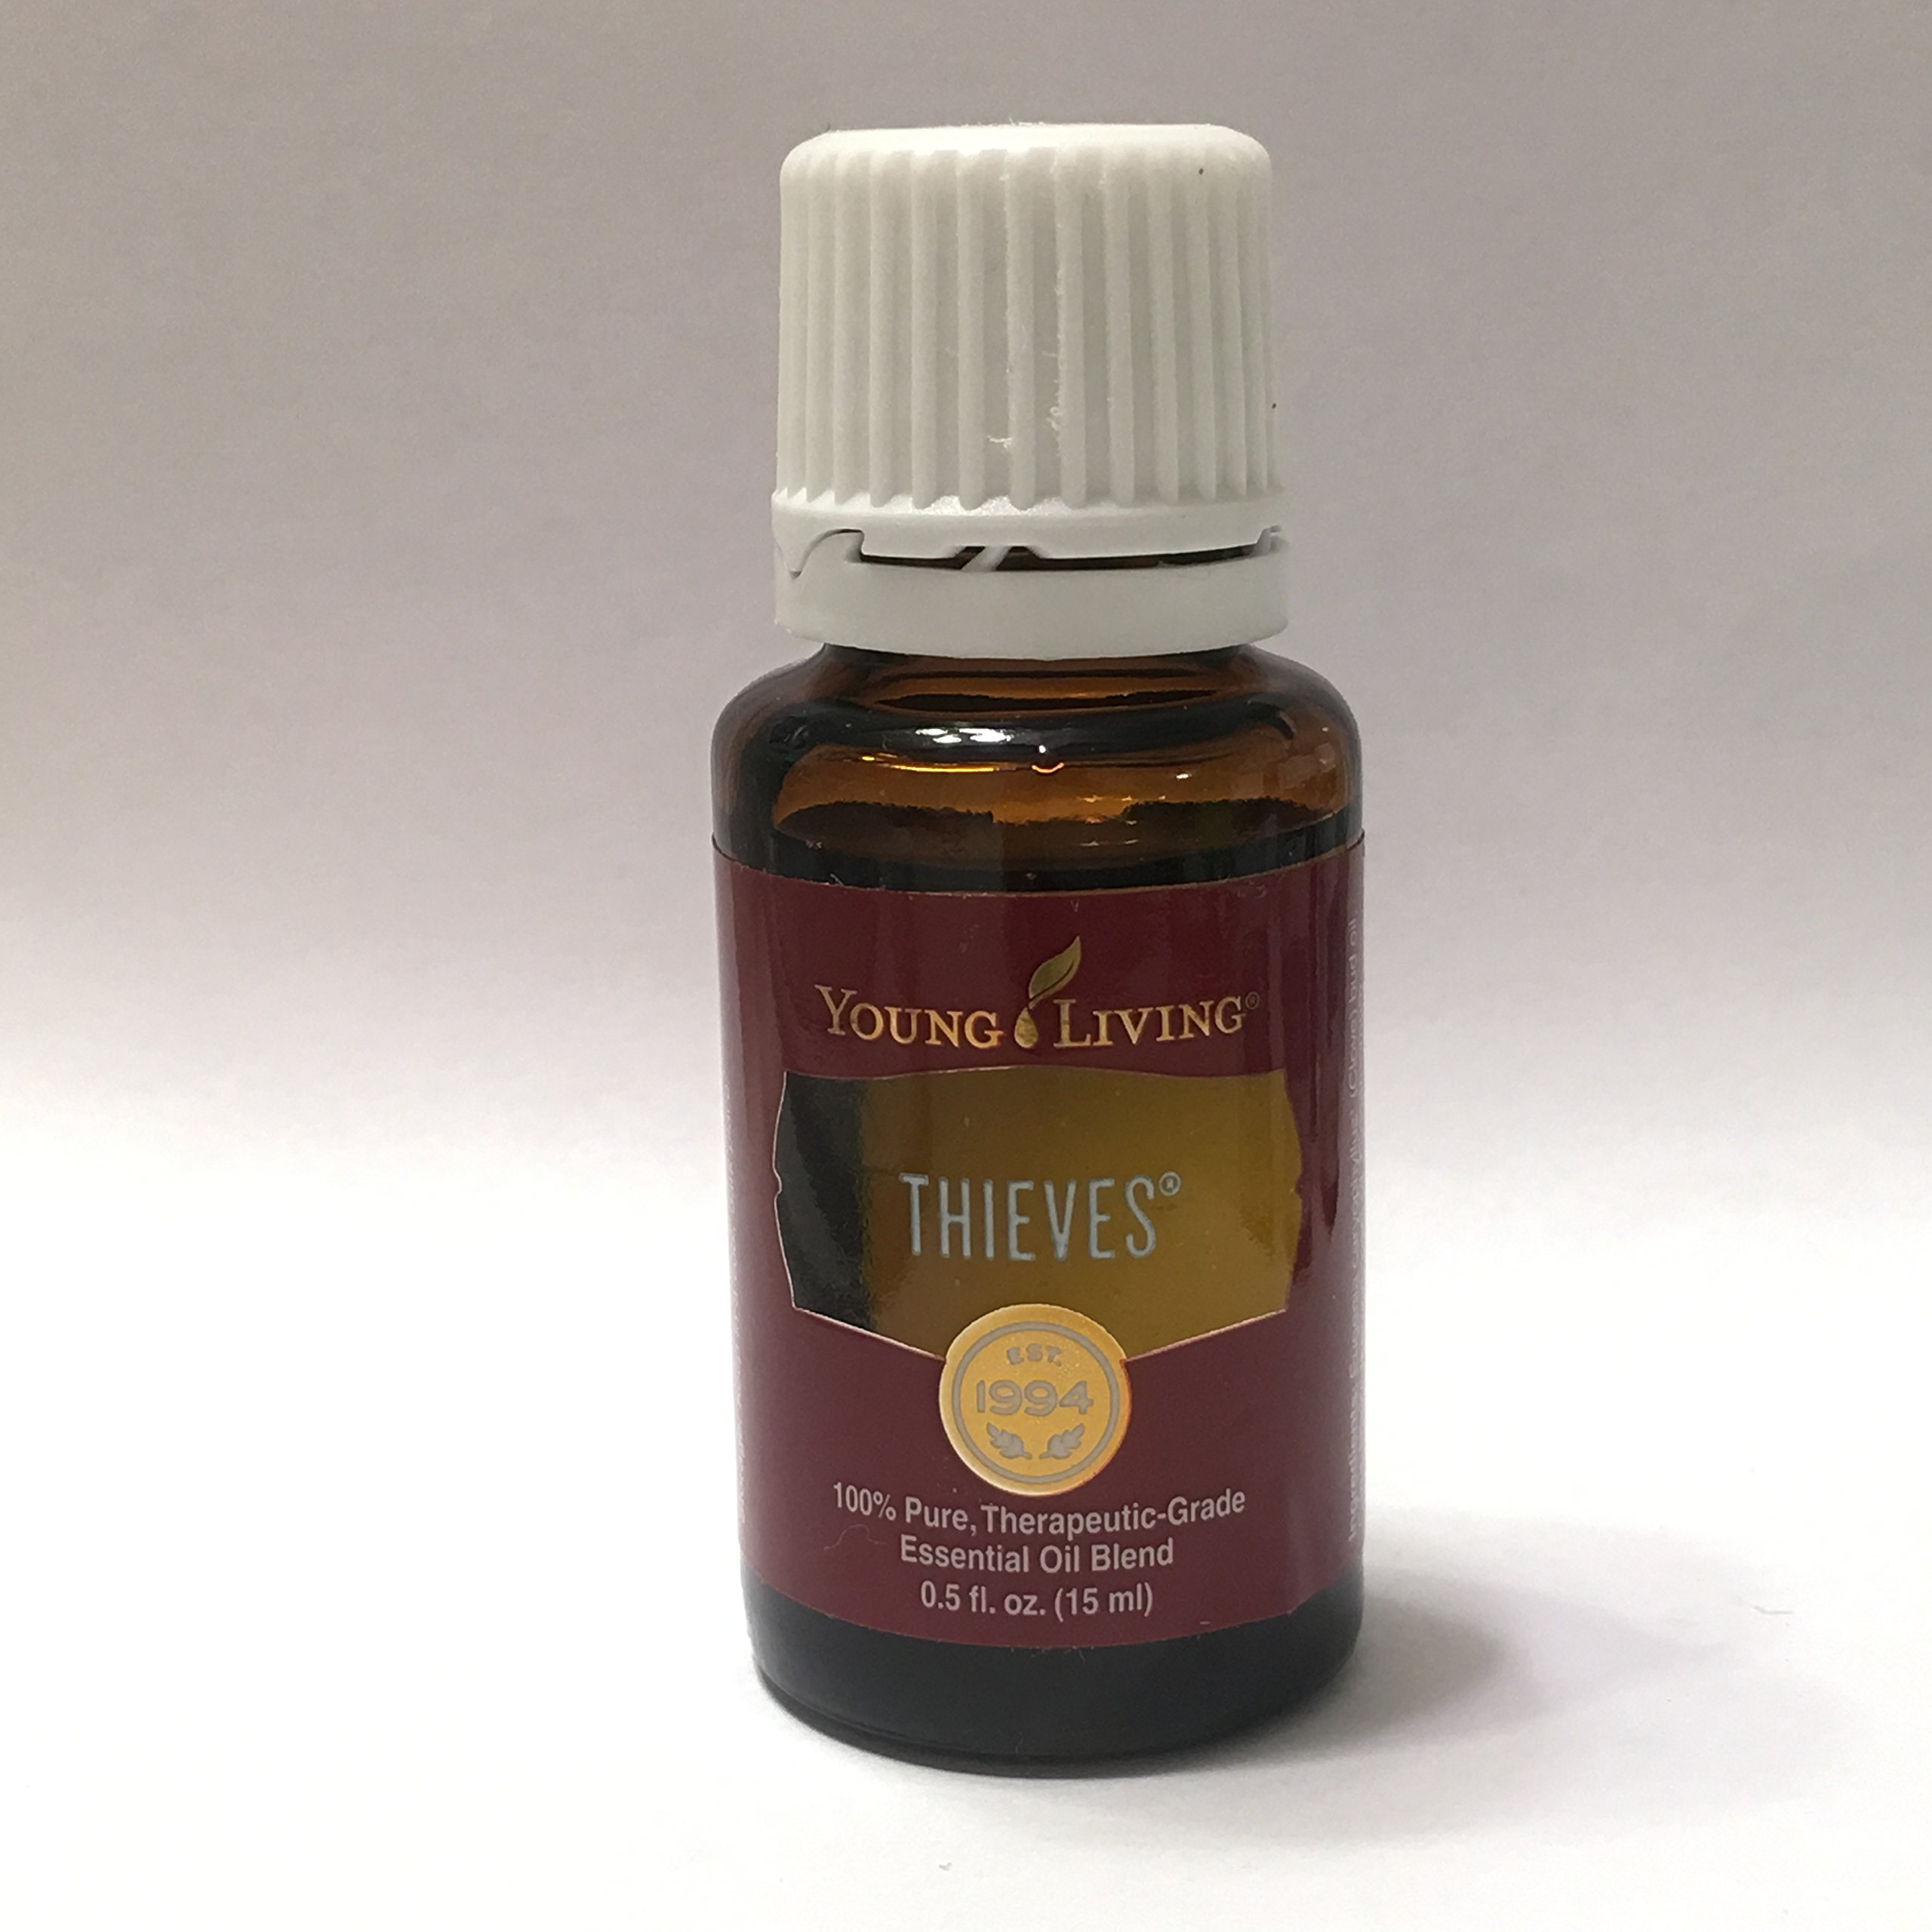 Thieves Essential Oil 15ml by Young Living Essential Oils by Young Living